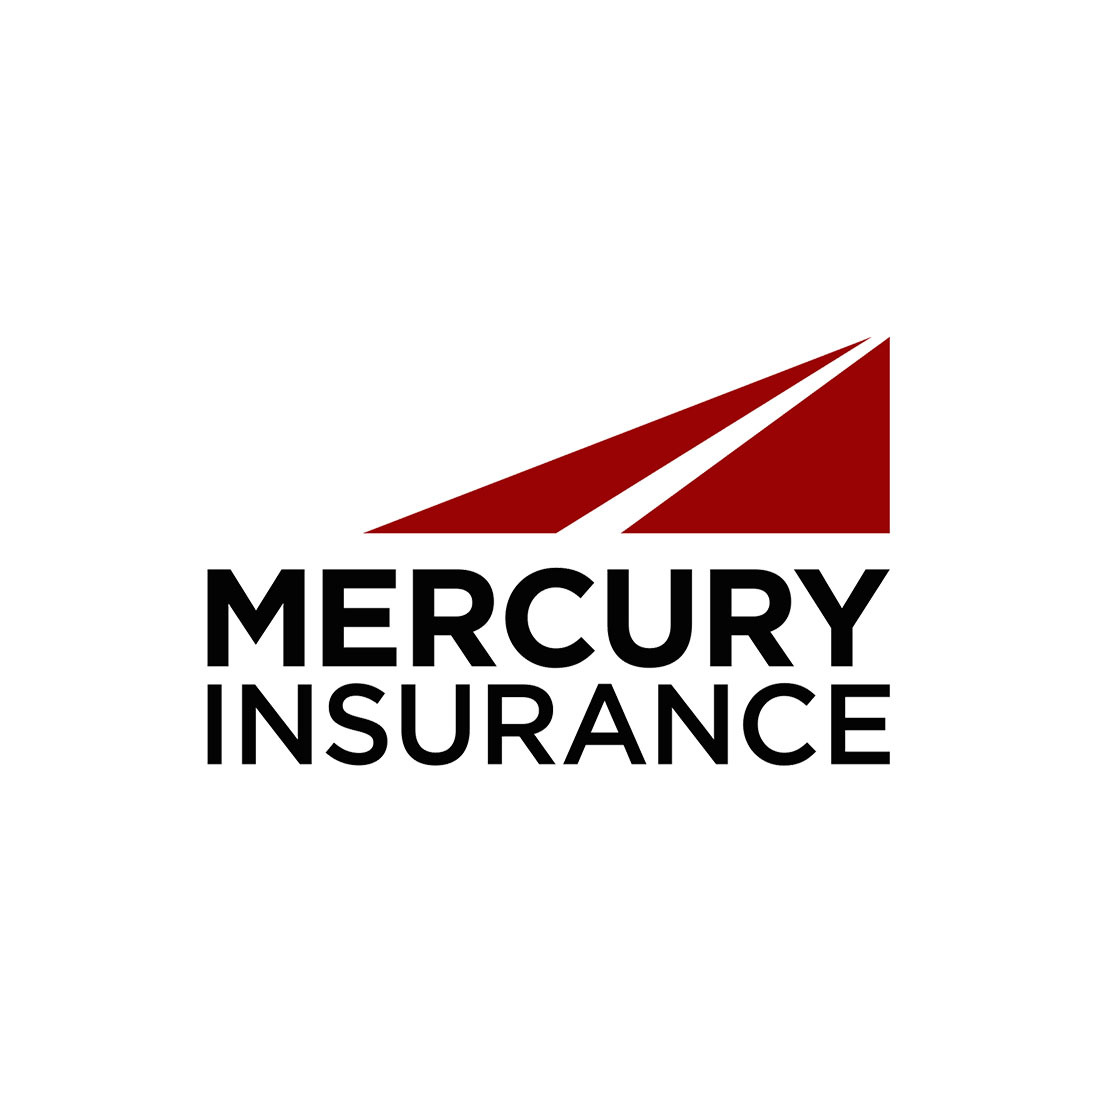 "<p><span style=""font-weight: bold;"">mercury insurance</span> </p>"